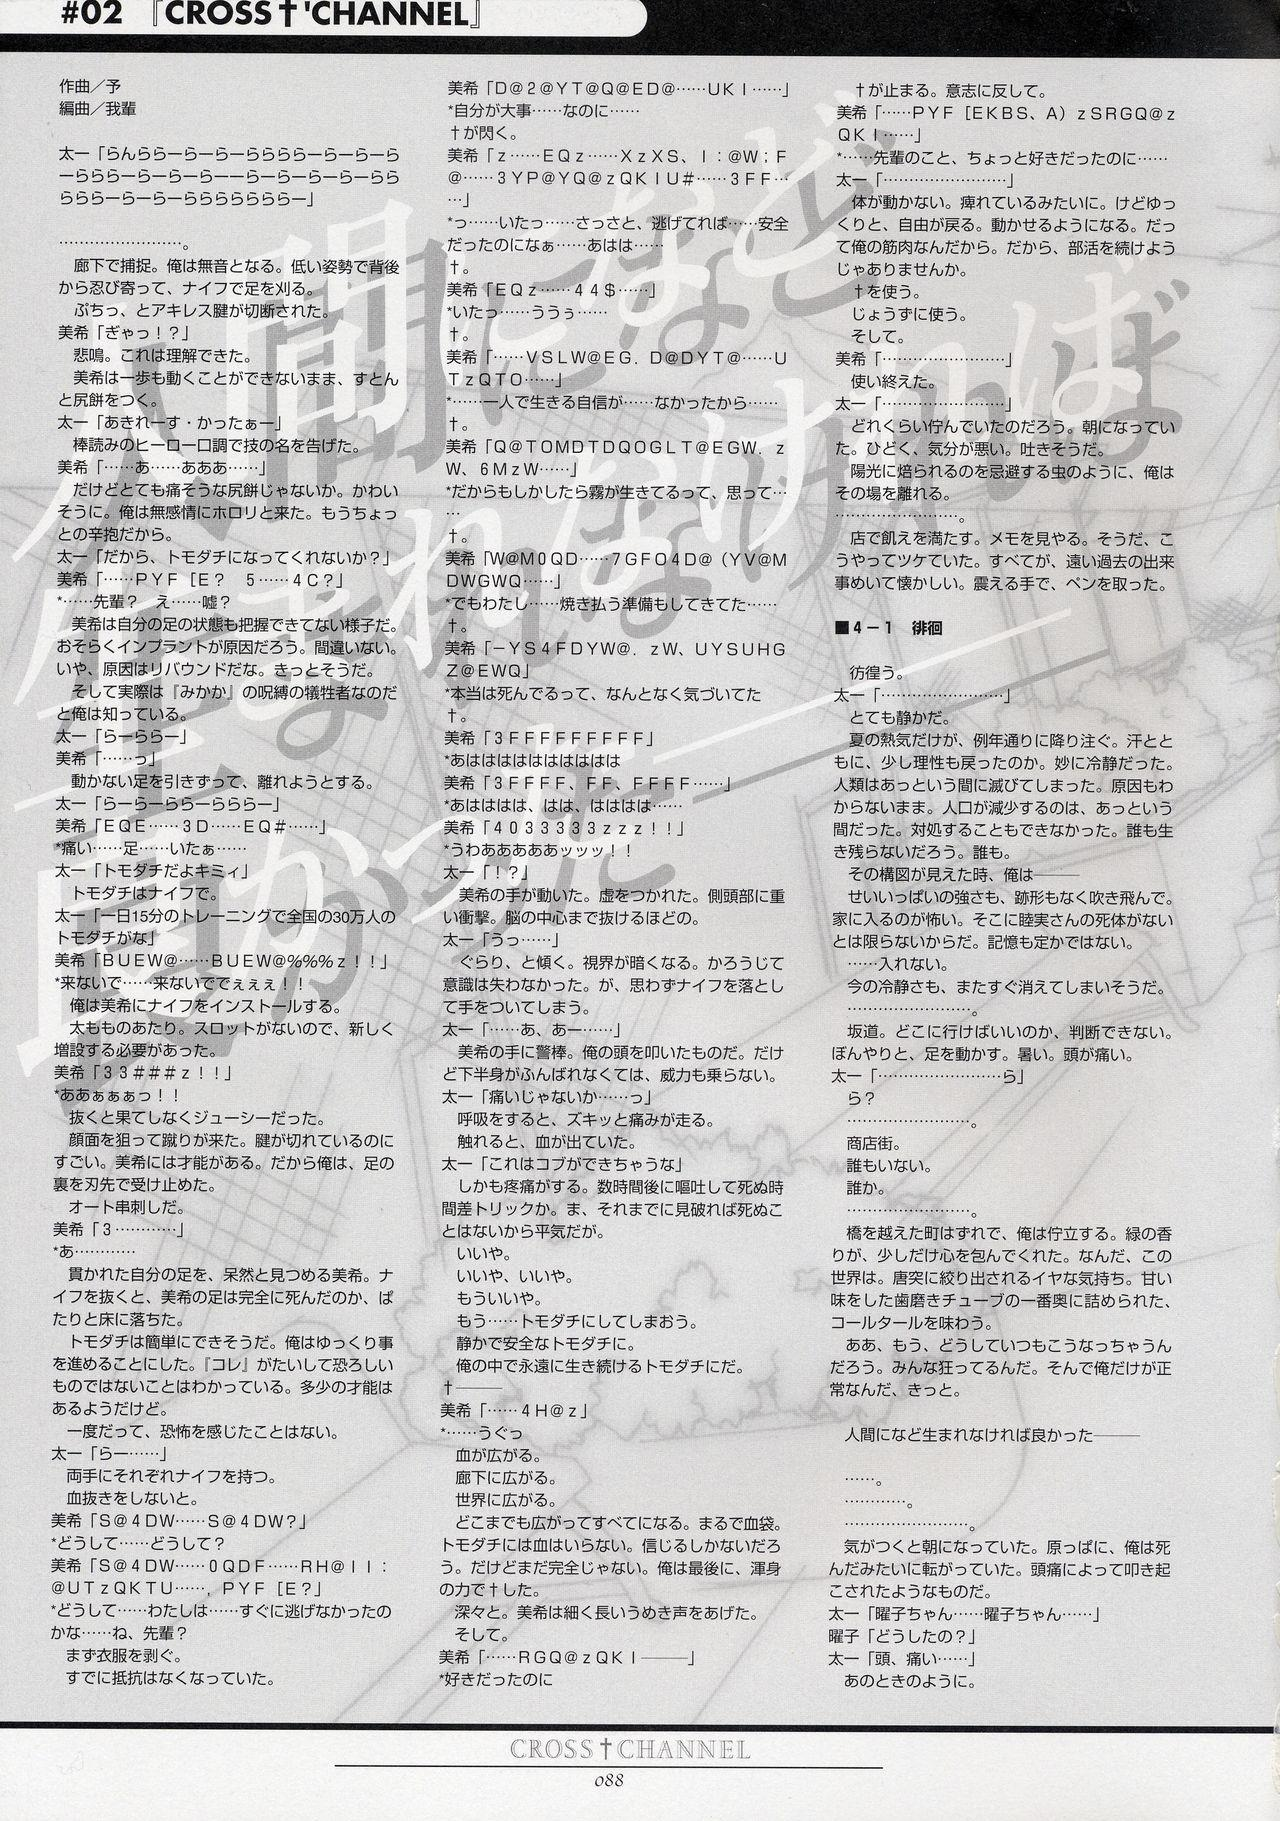 CROSS†CHANNEL Official Setting Materials 98